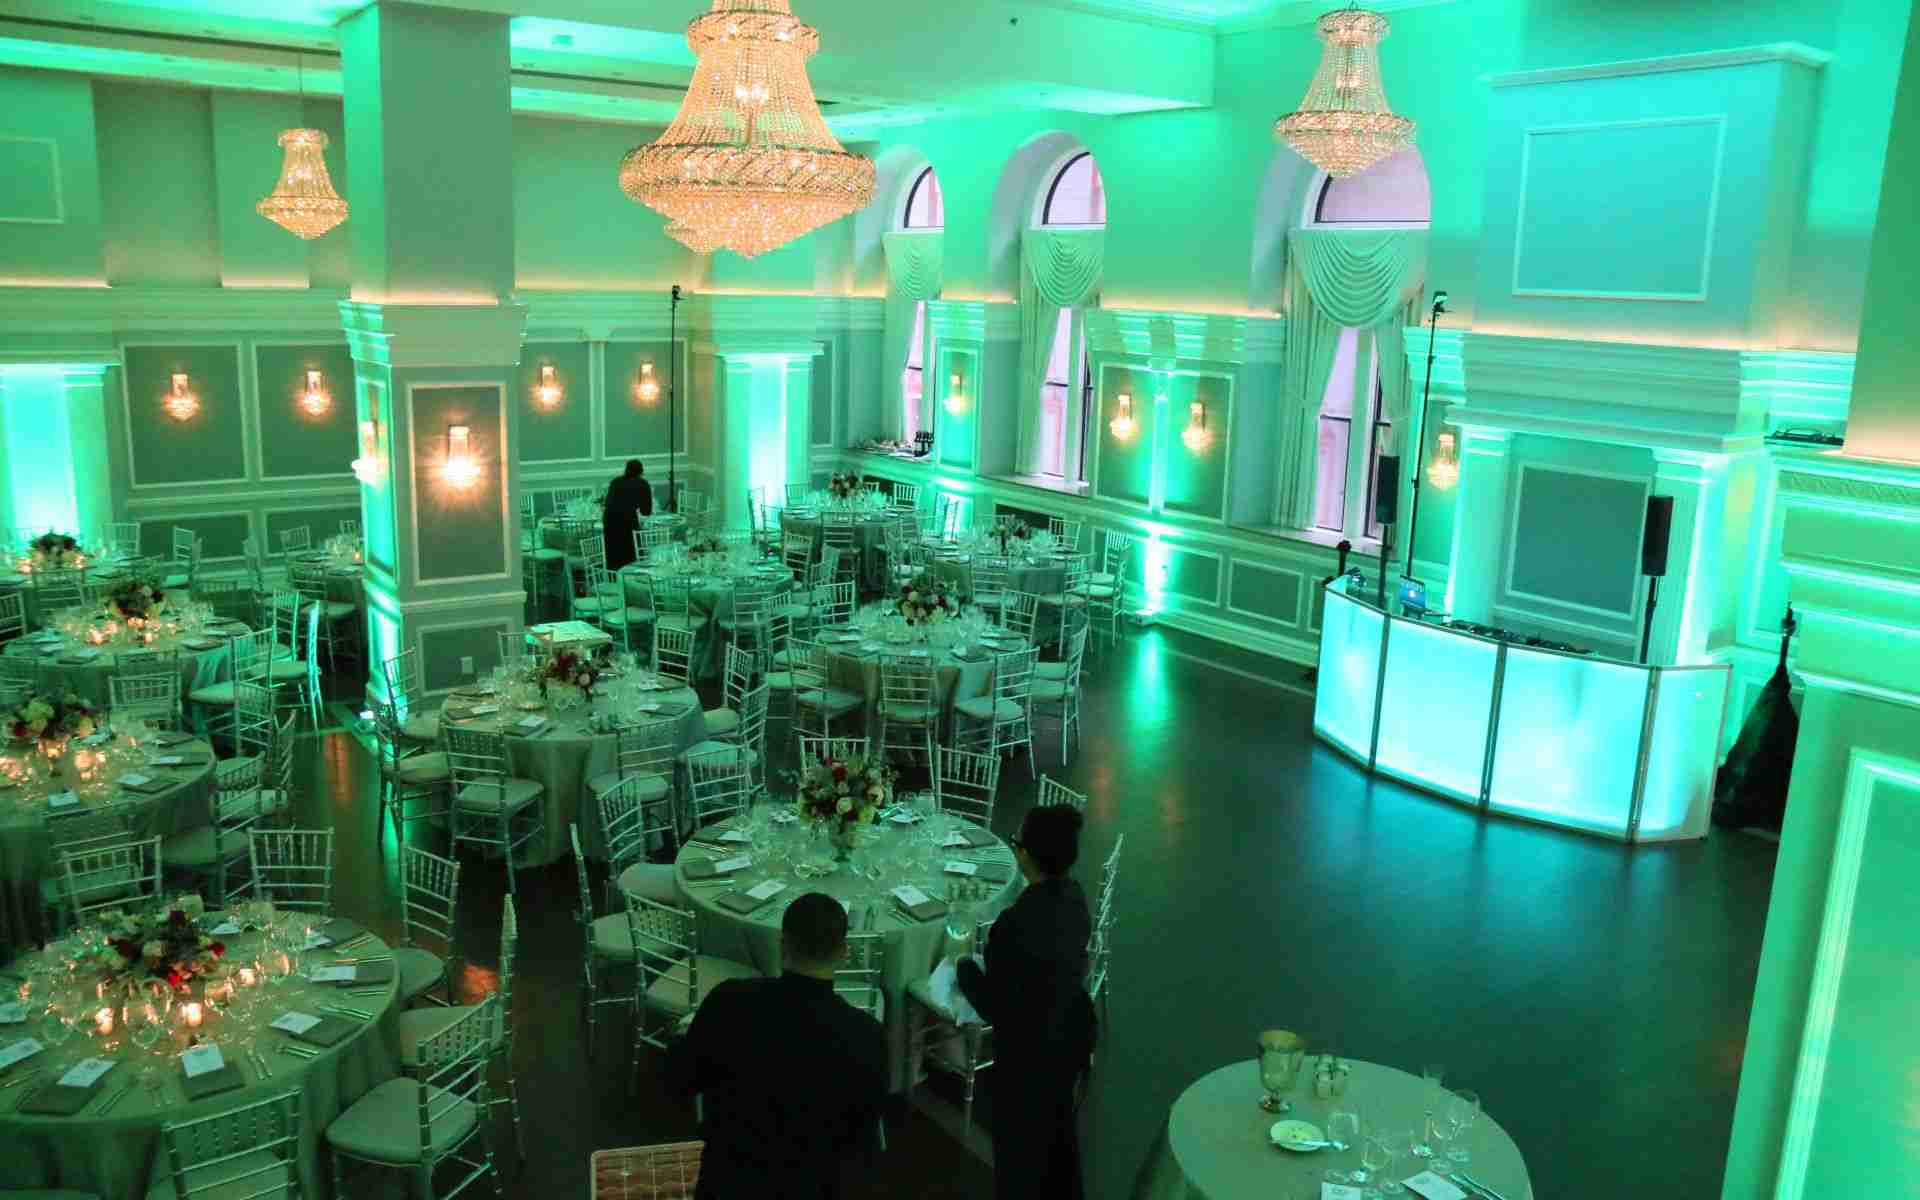 Savannah GA DJ Setup With Uplighting Around Venue_Example_Teal Green